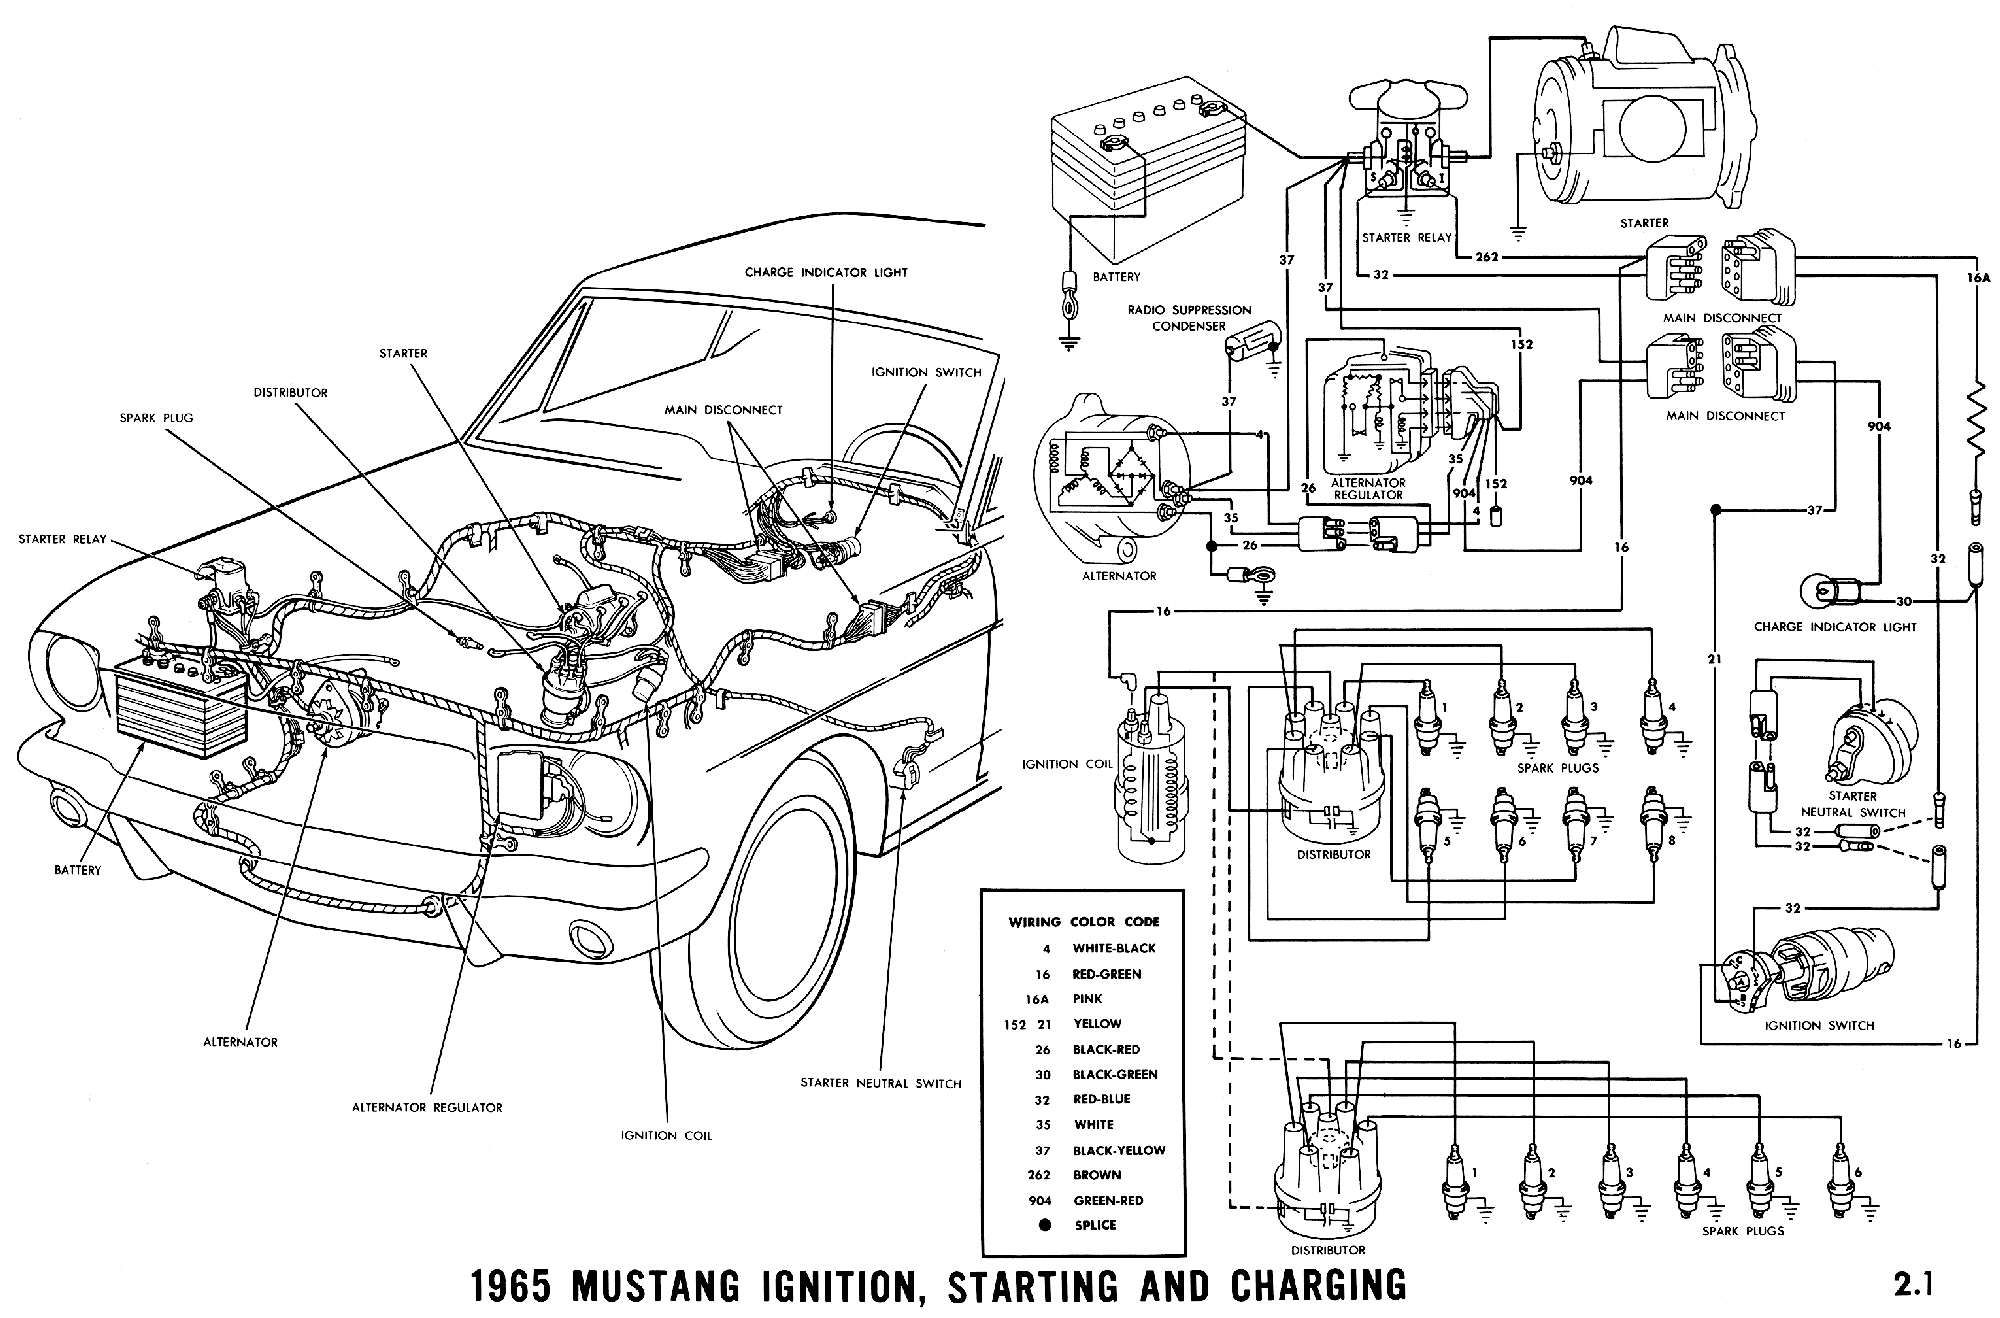 65 mustang wiring diagram 1965 mustang wiring diagrams - average joe restoration ... #4